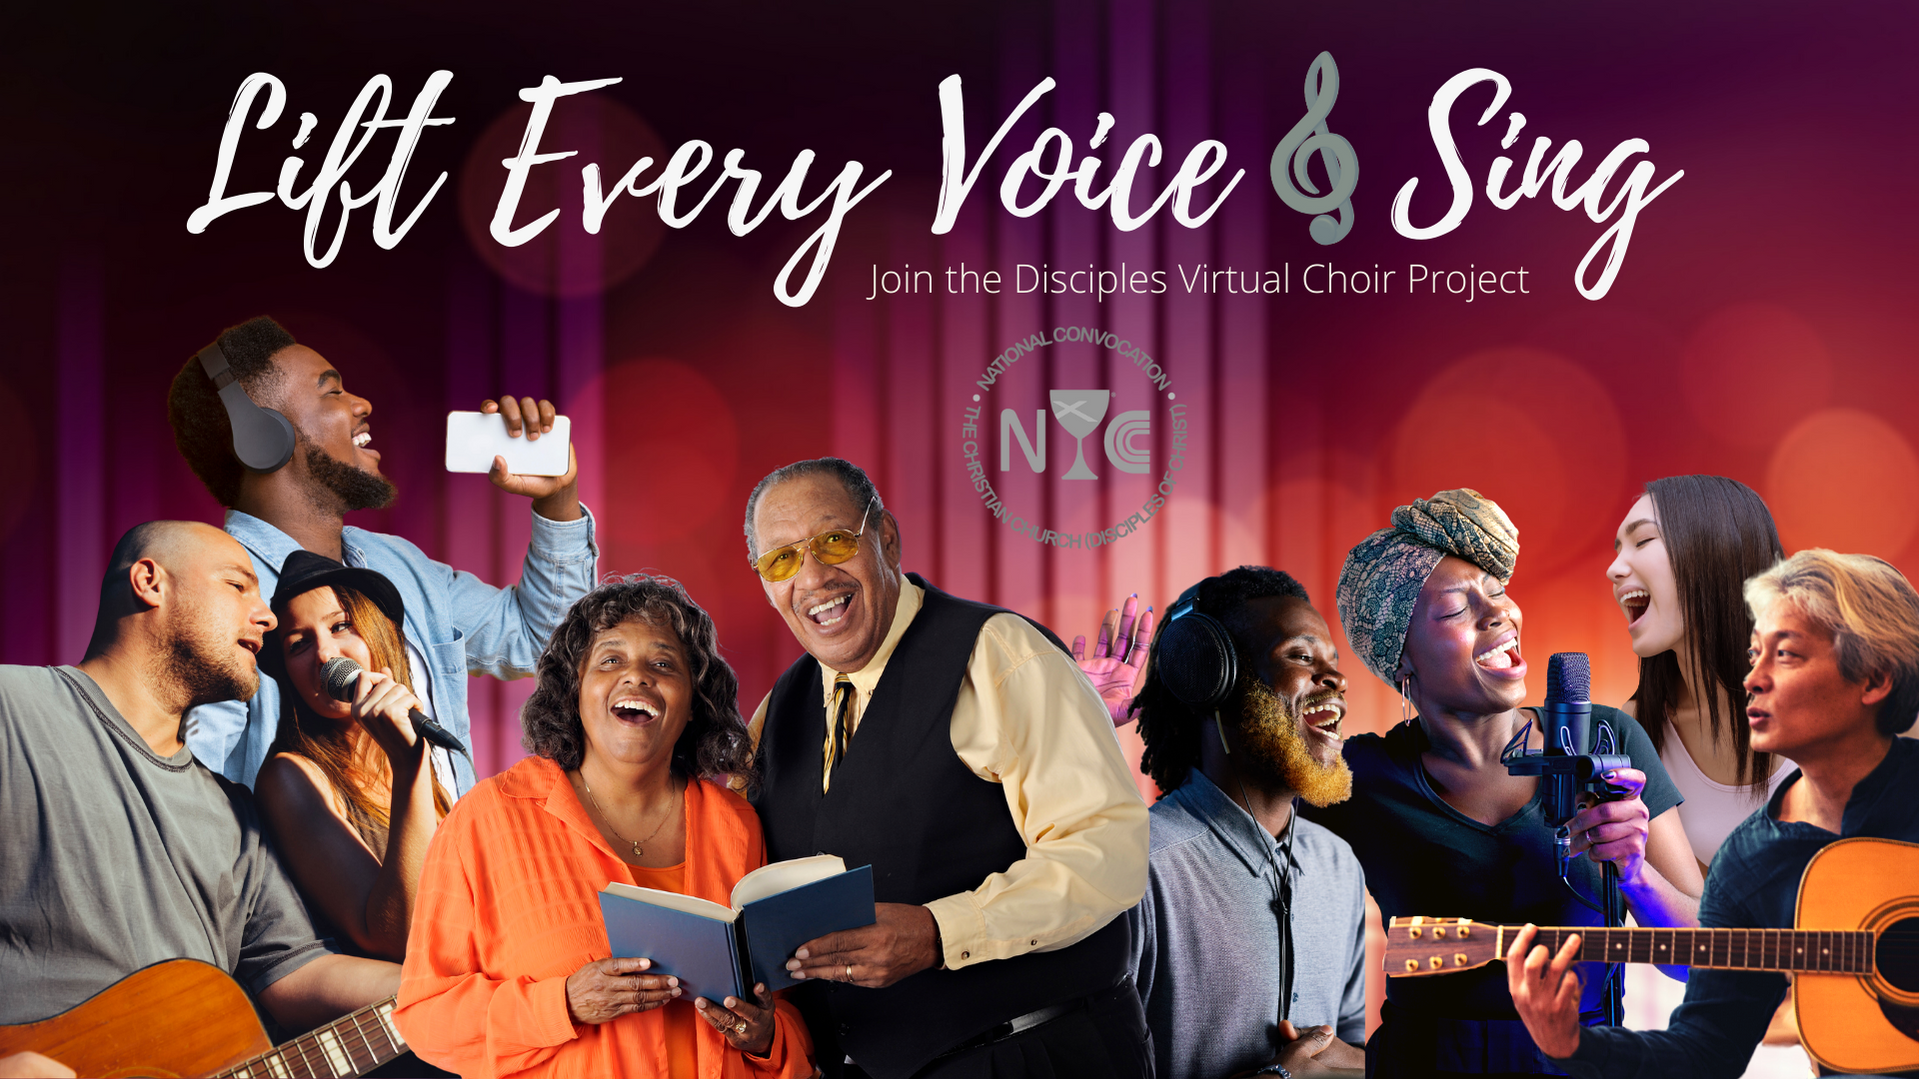 Lift Every Voice & Sing Project